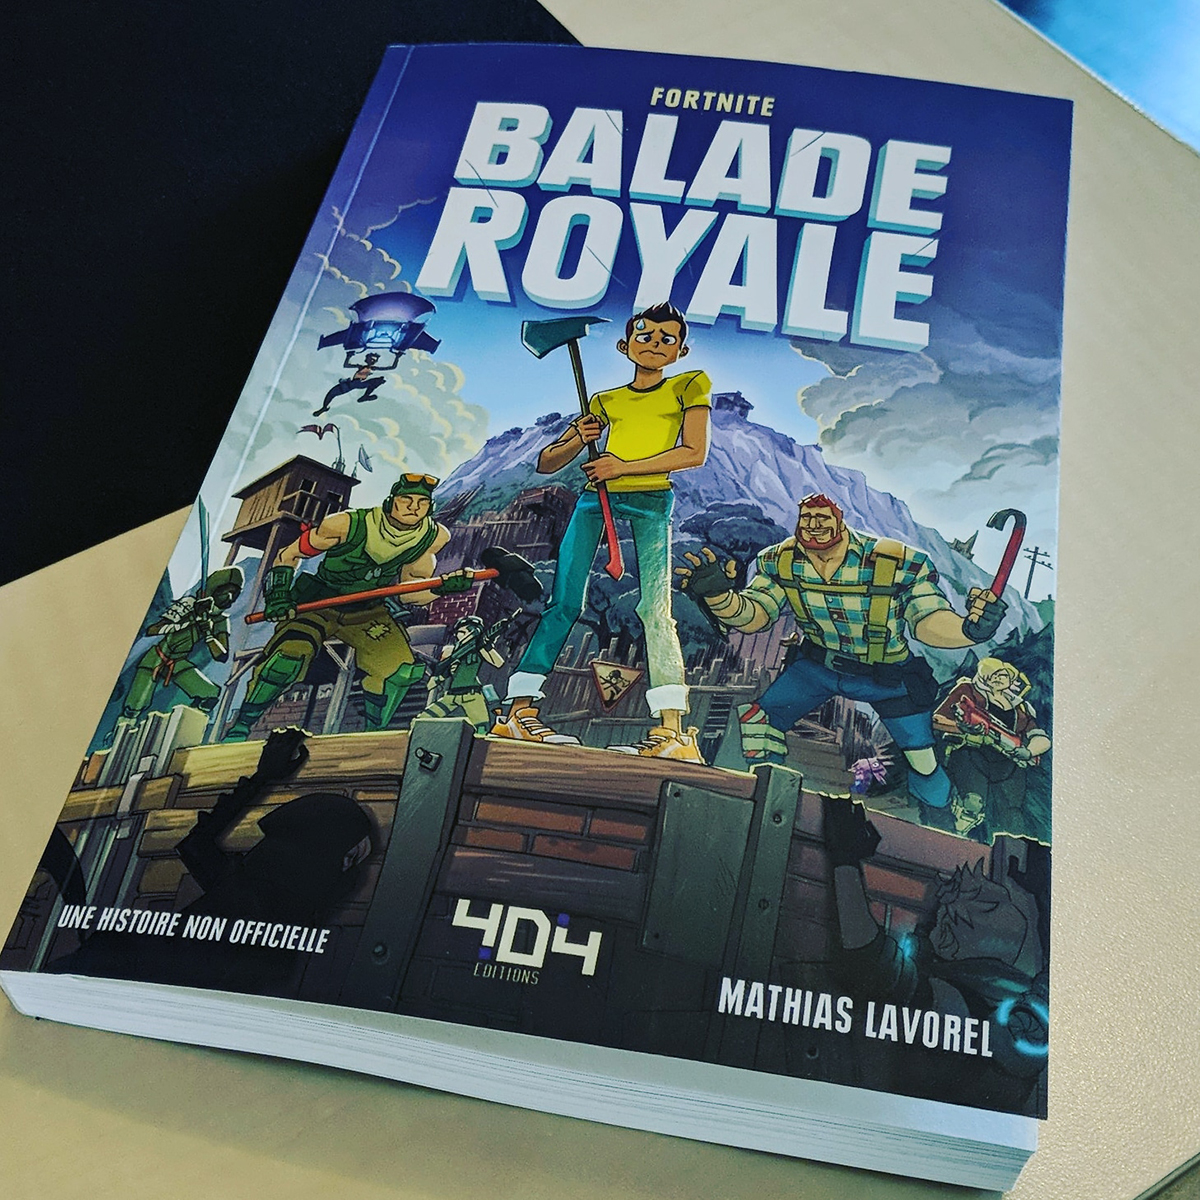 Fortnite Balade Royale Insert Coin